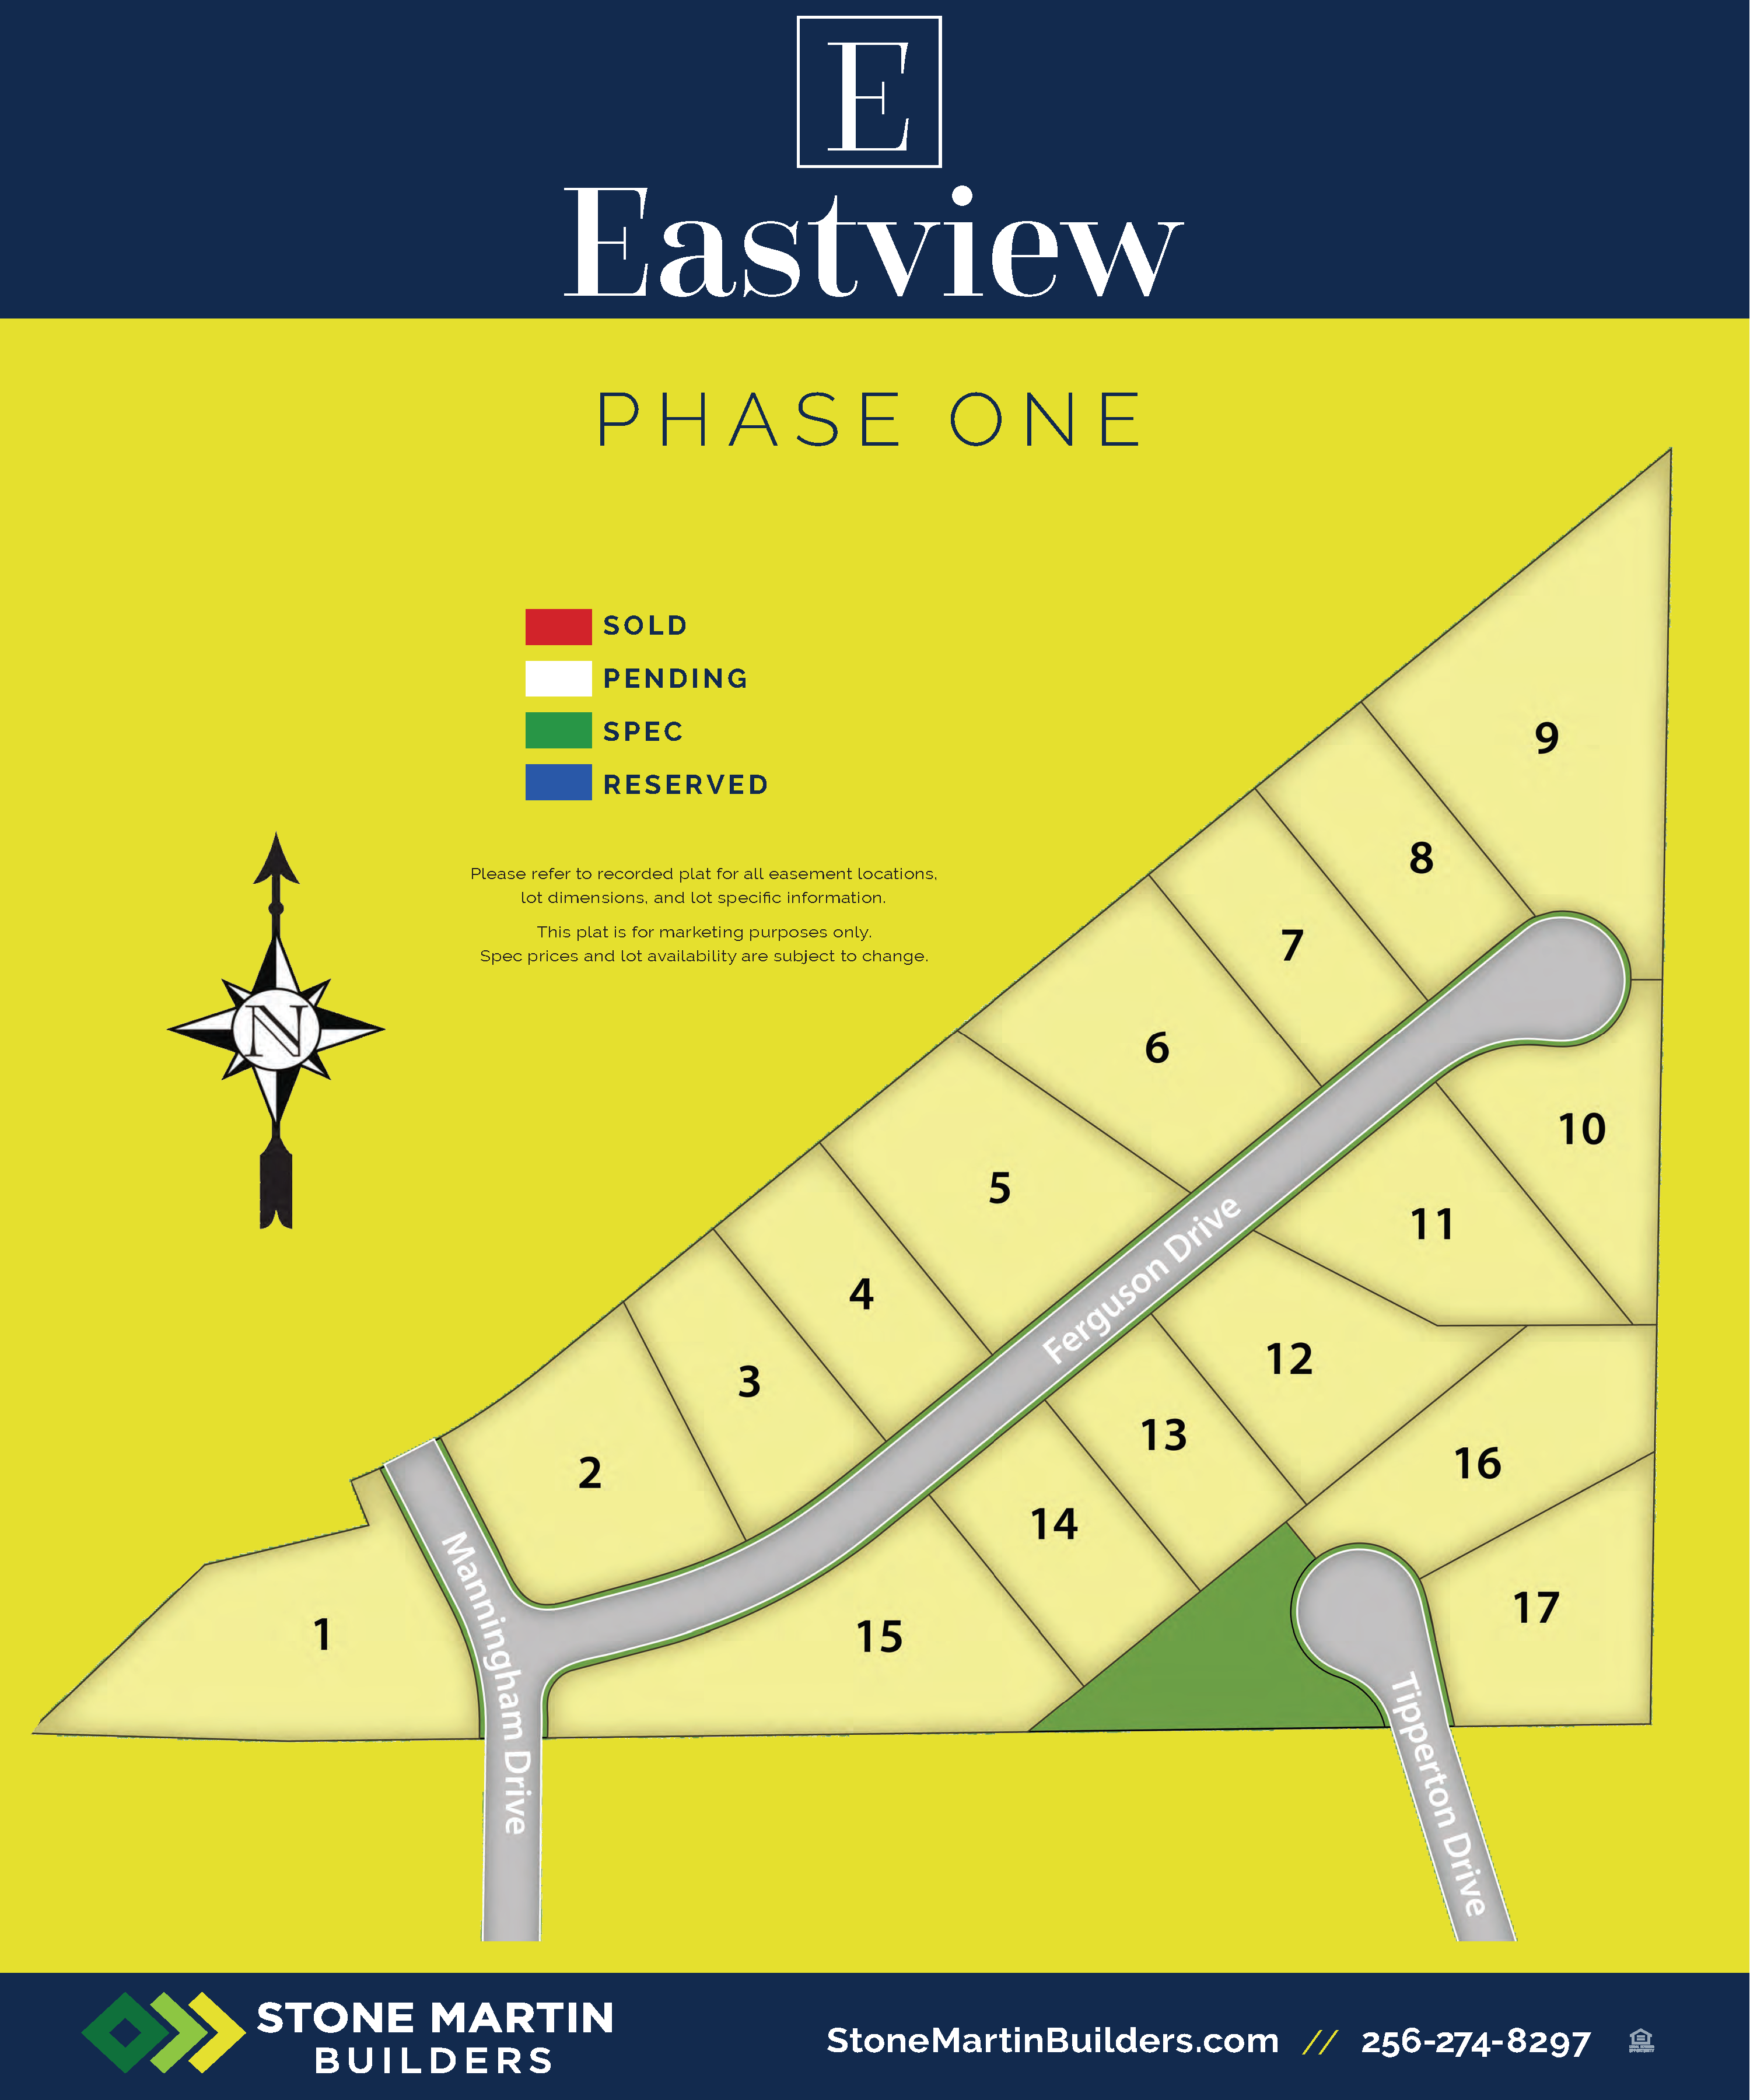 Madison, AL Eastview New Homes from Stone Martin Builders